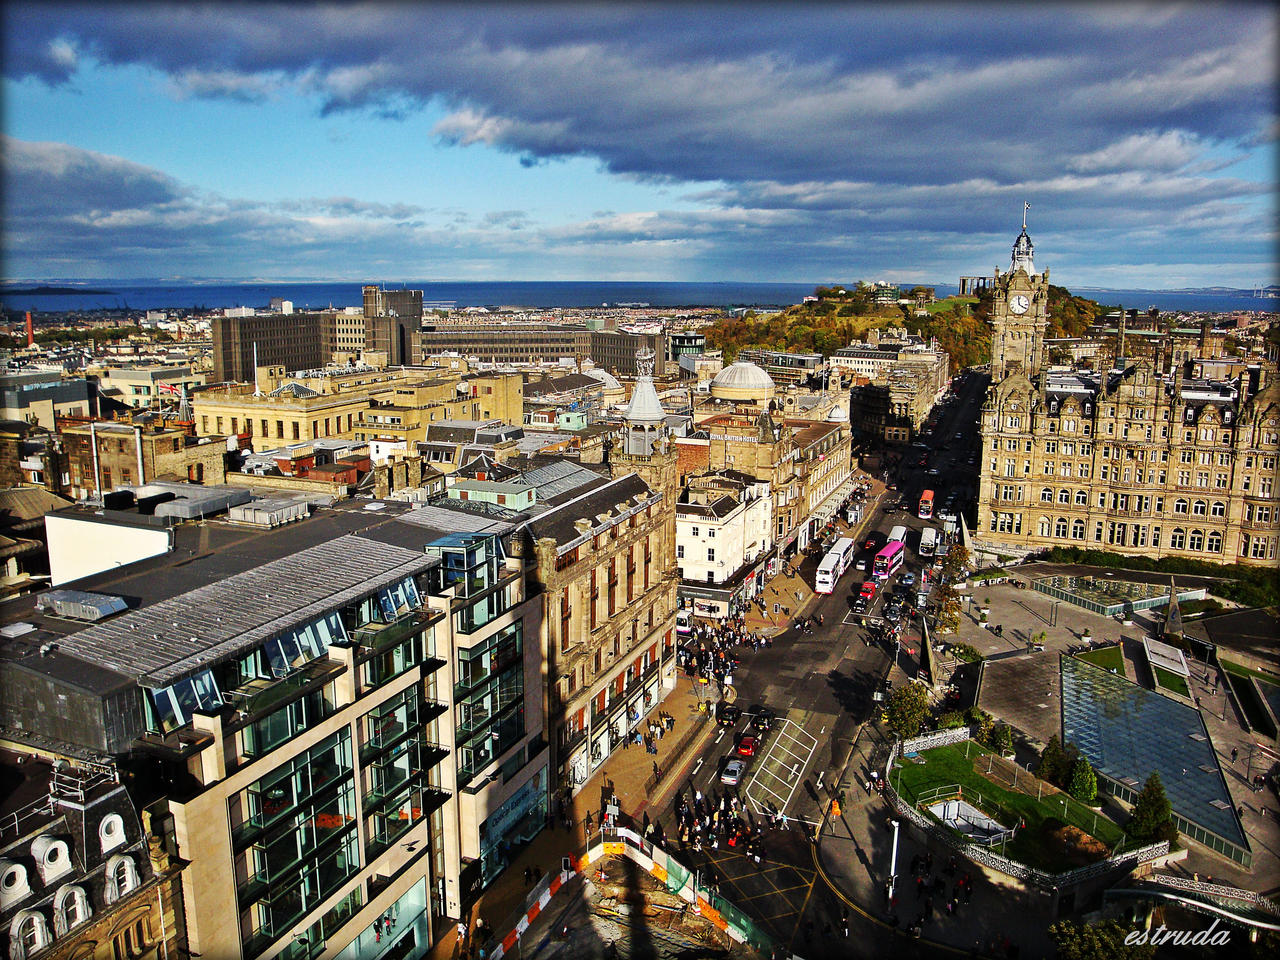 The City Of Edinburgh by Estruda